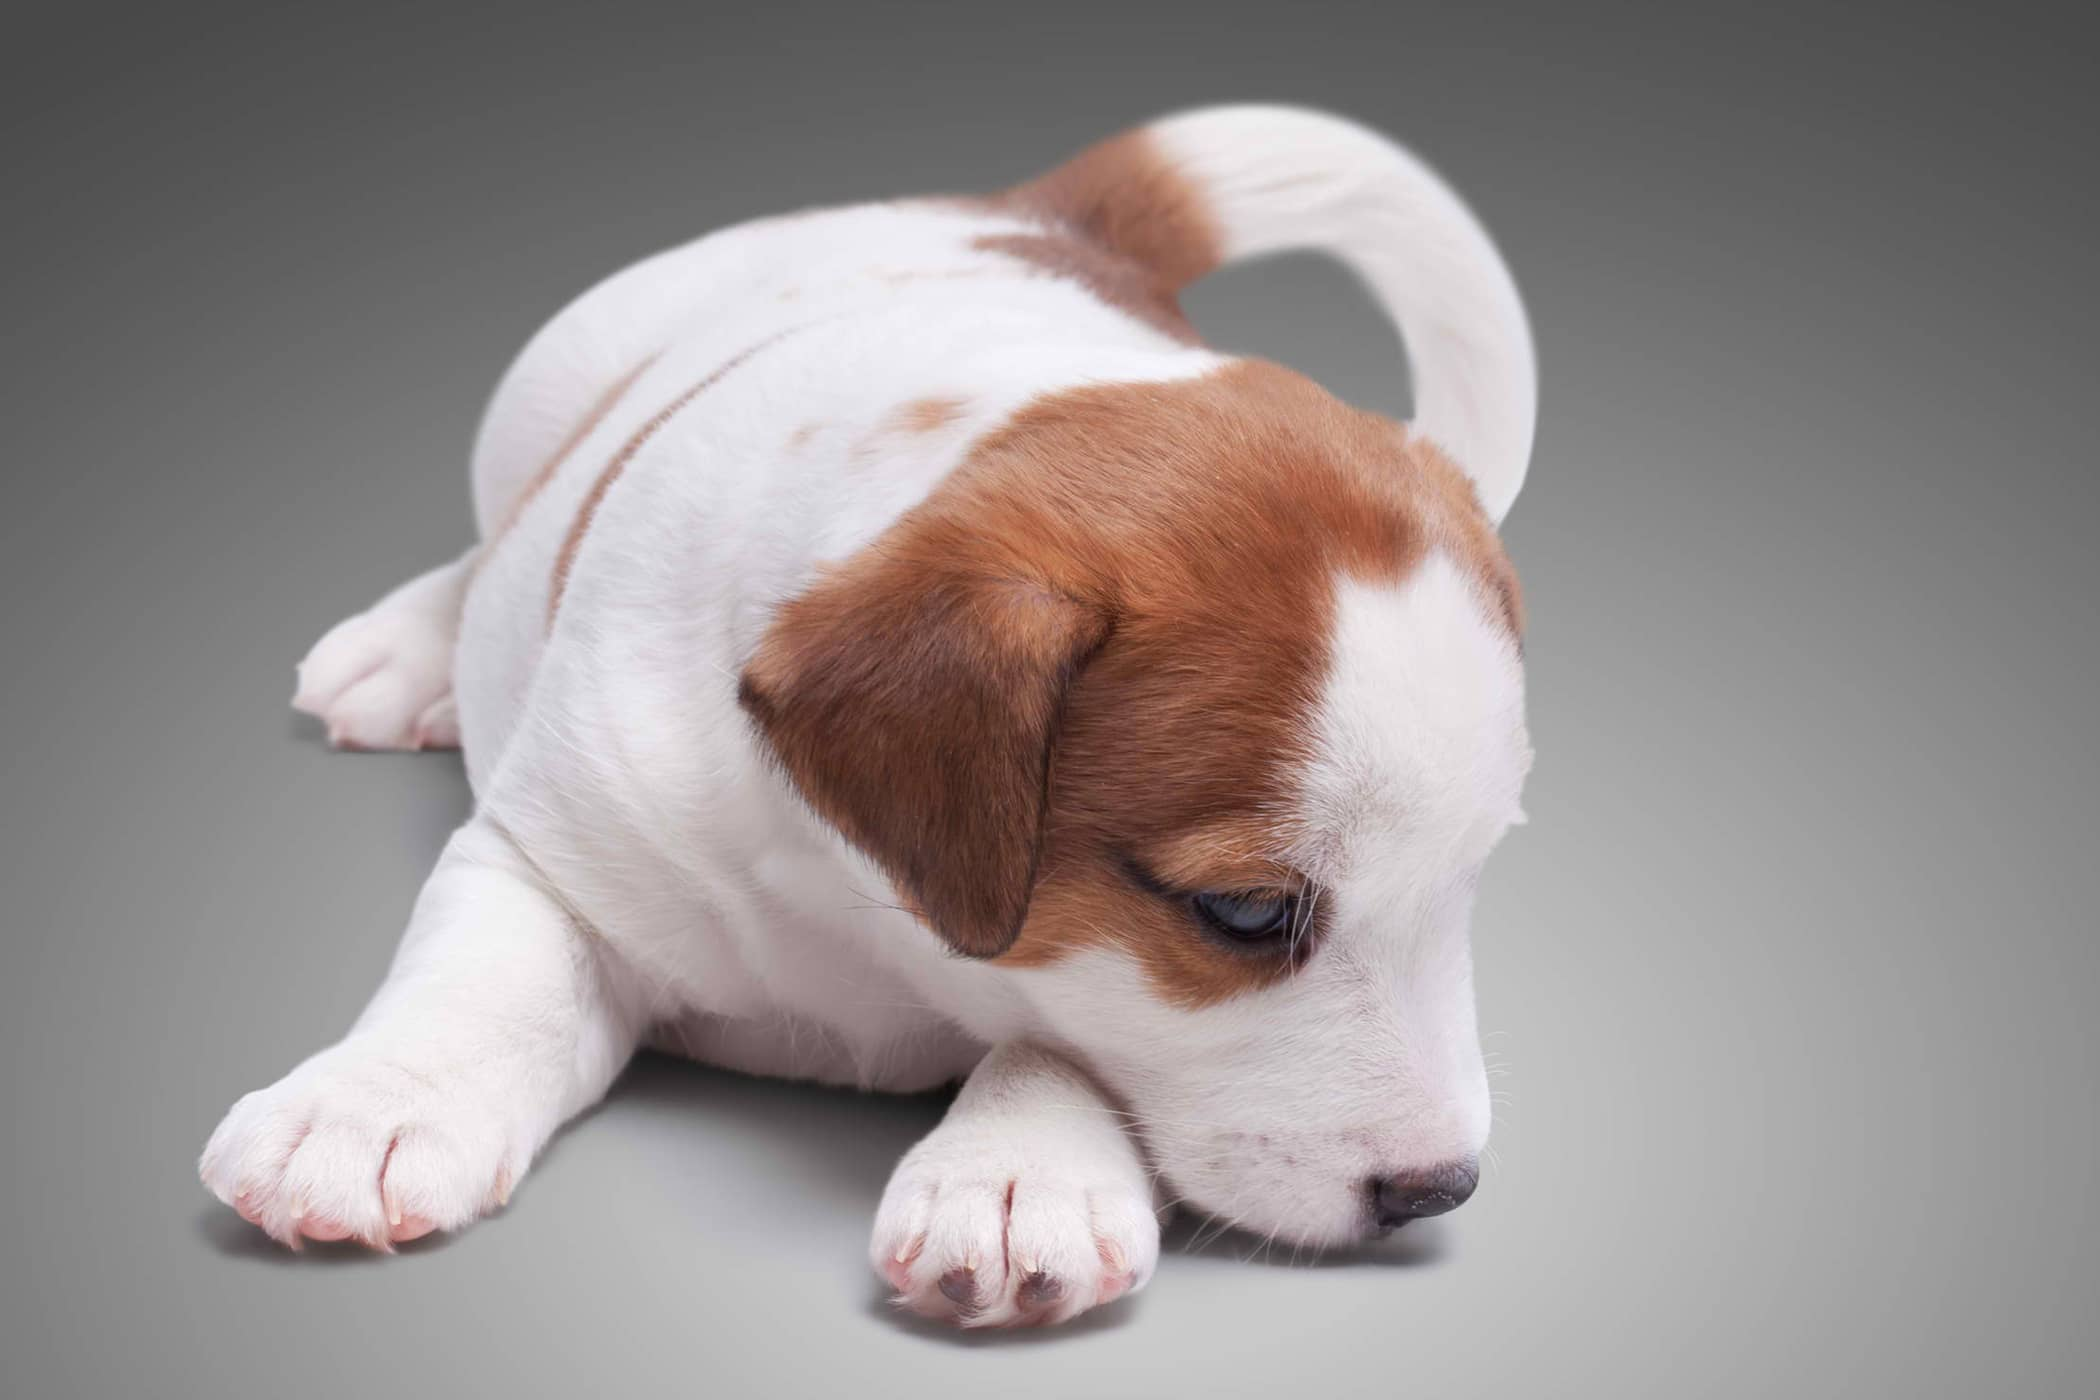 Rectal Prolapse Treatment in Dogs